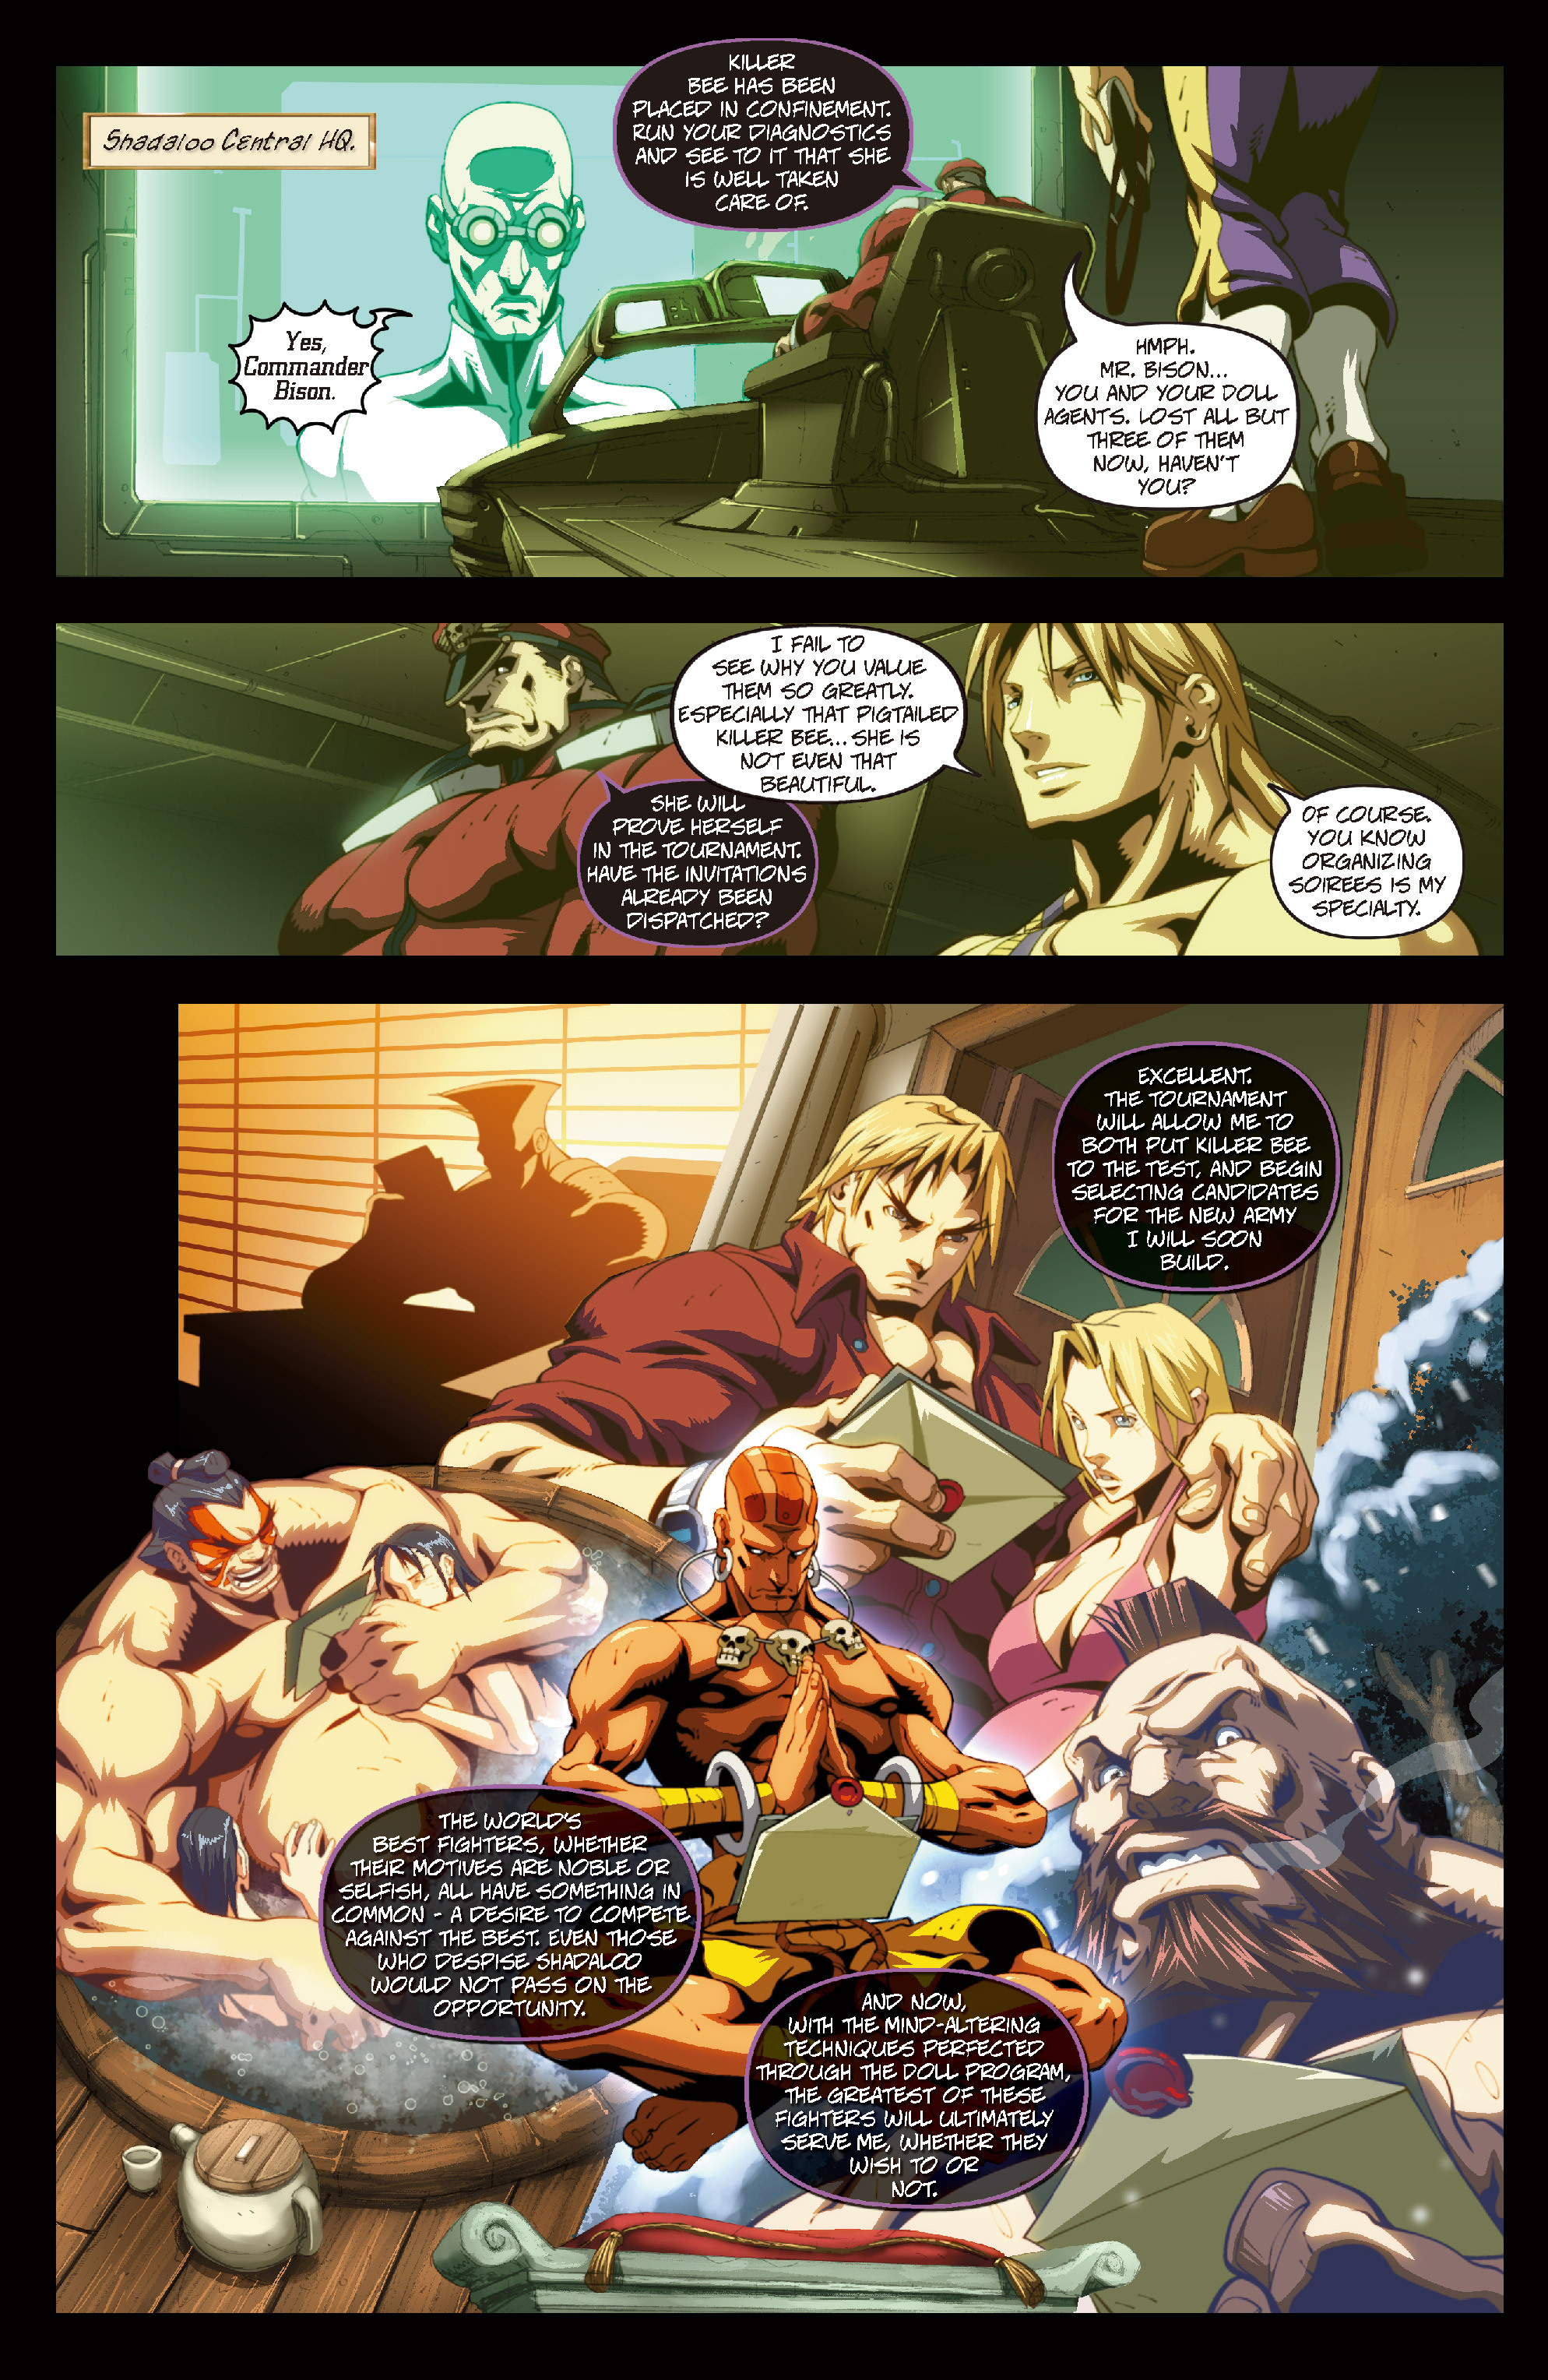 Street Fighter II chap 6 pic 22